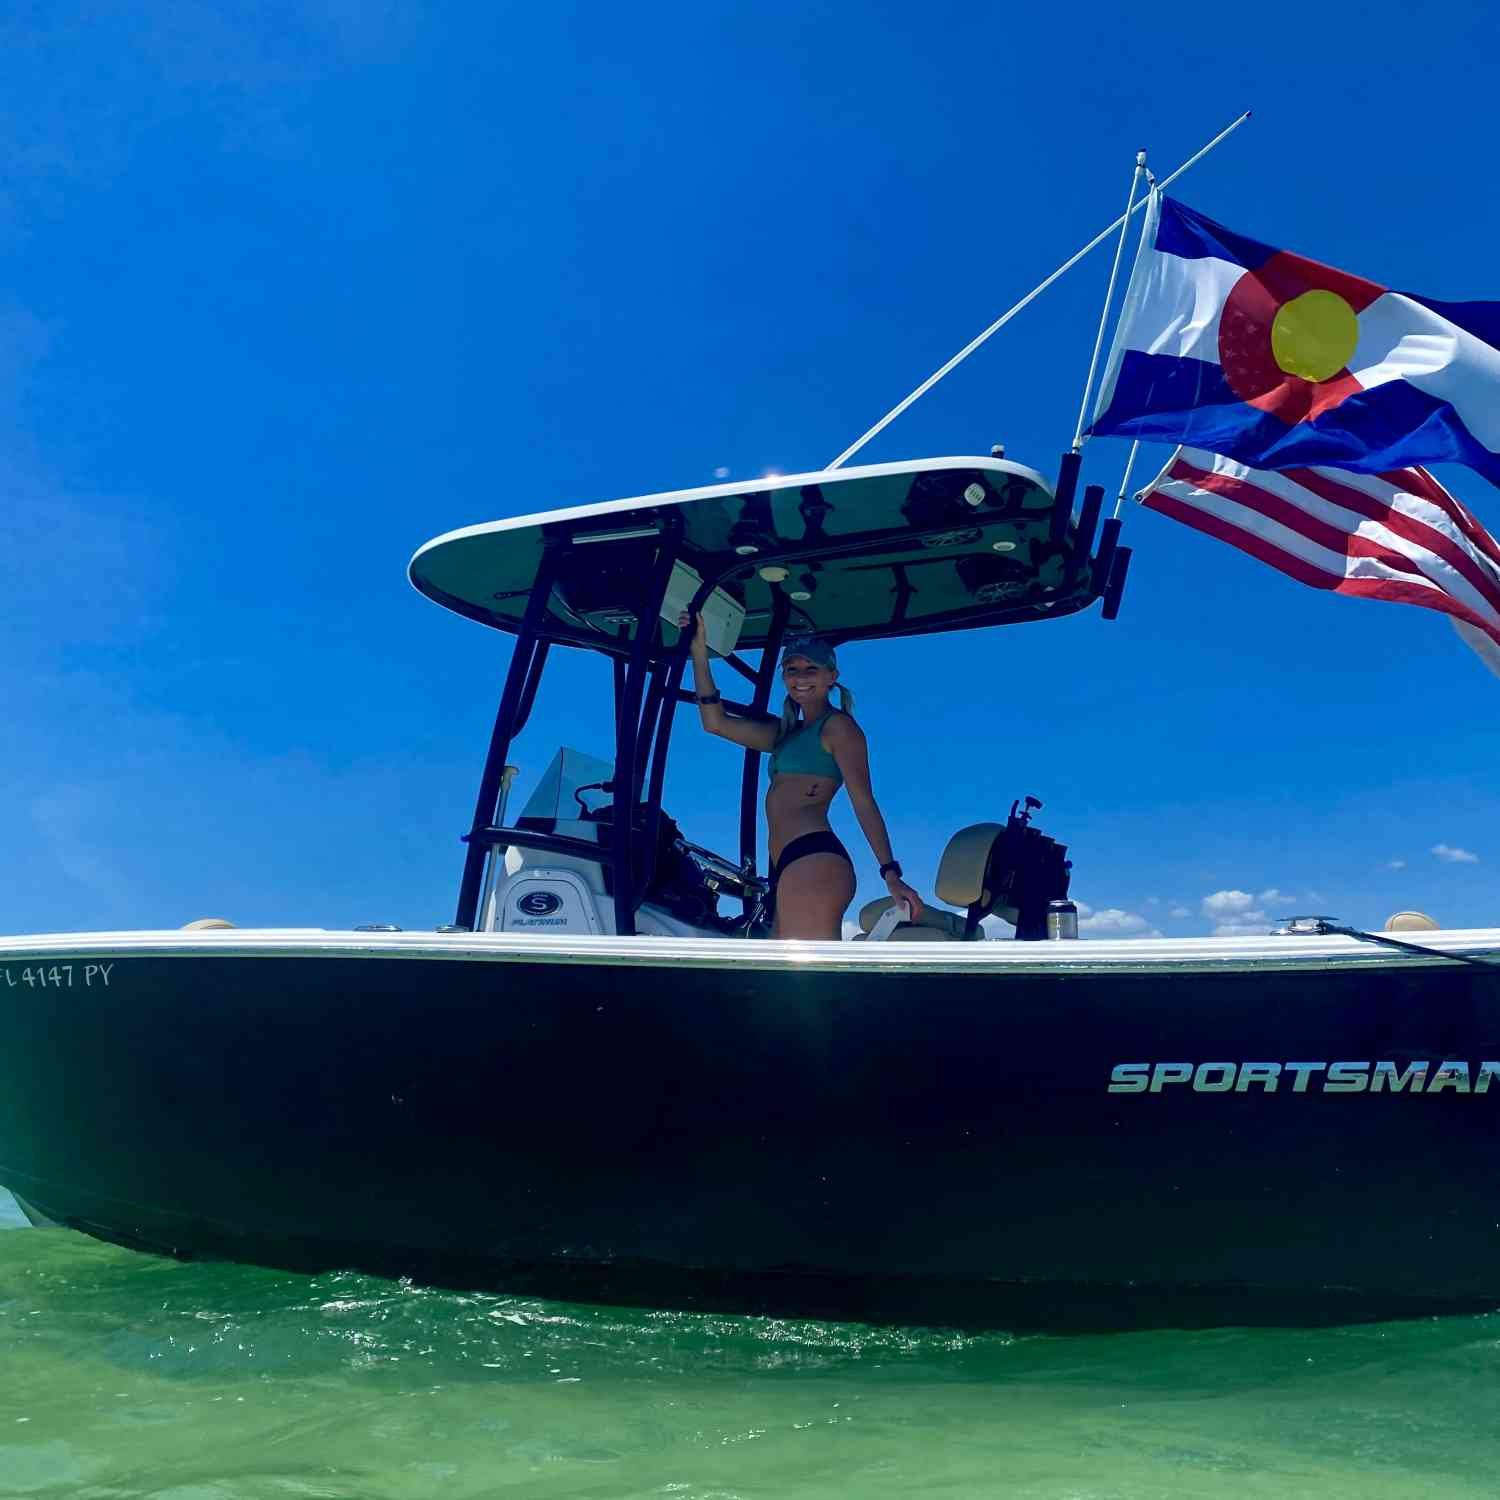 Title: Nice Looking Boat Too - On board their Sportsman Open 242 Center Console - Location: Passage Key. Participating in the Photo Contest #SportsmanJune2021